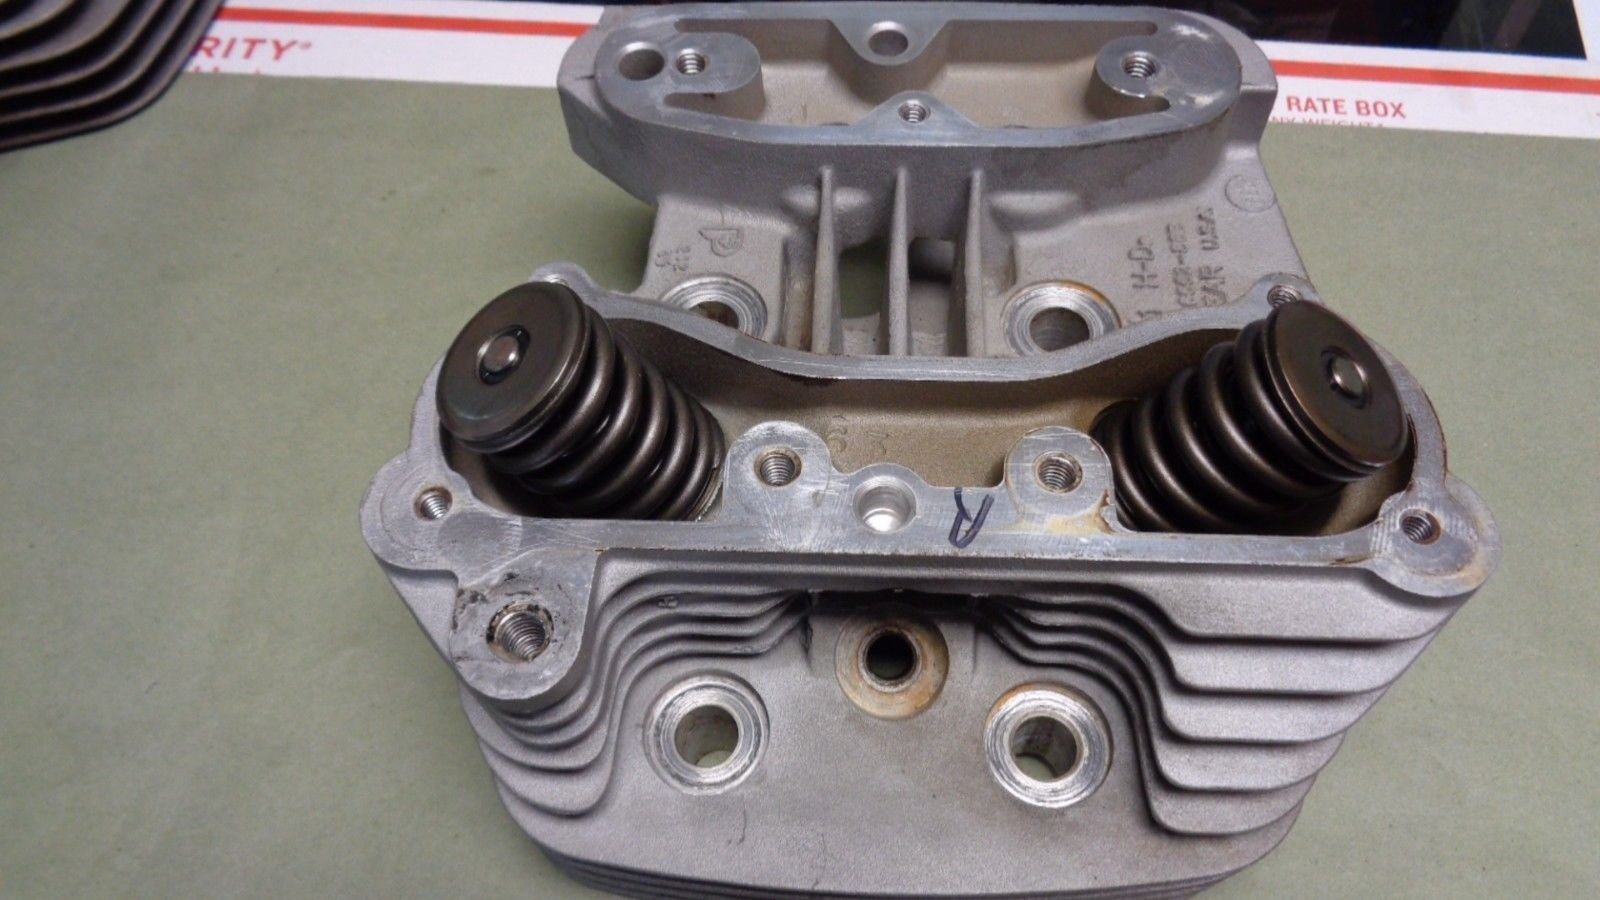 http://motorcyclespareparts.net/02-harley-sportster-883-rear-cylinder-head-pn-16662-86b-good-condition/02 Harley Sportster 883 Rear Cylinder Head PN 16662-86B Good Condition